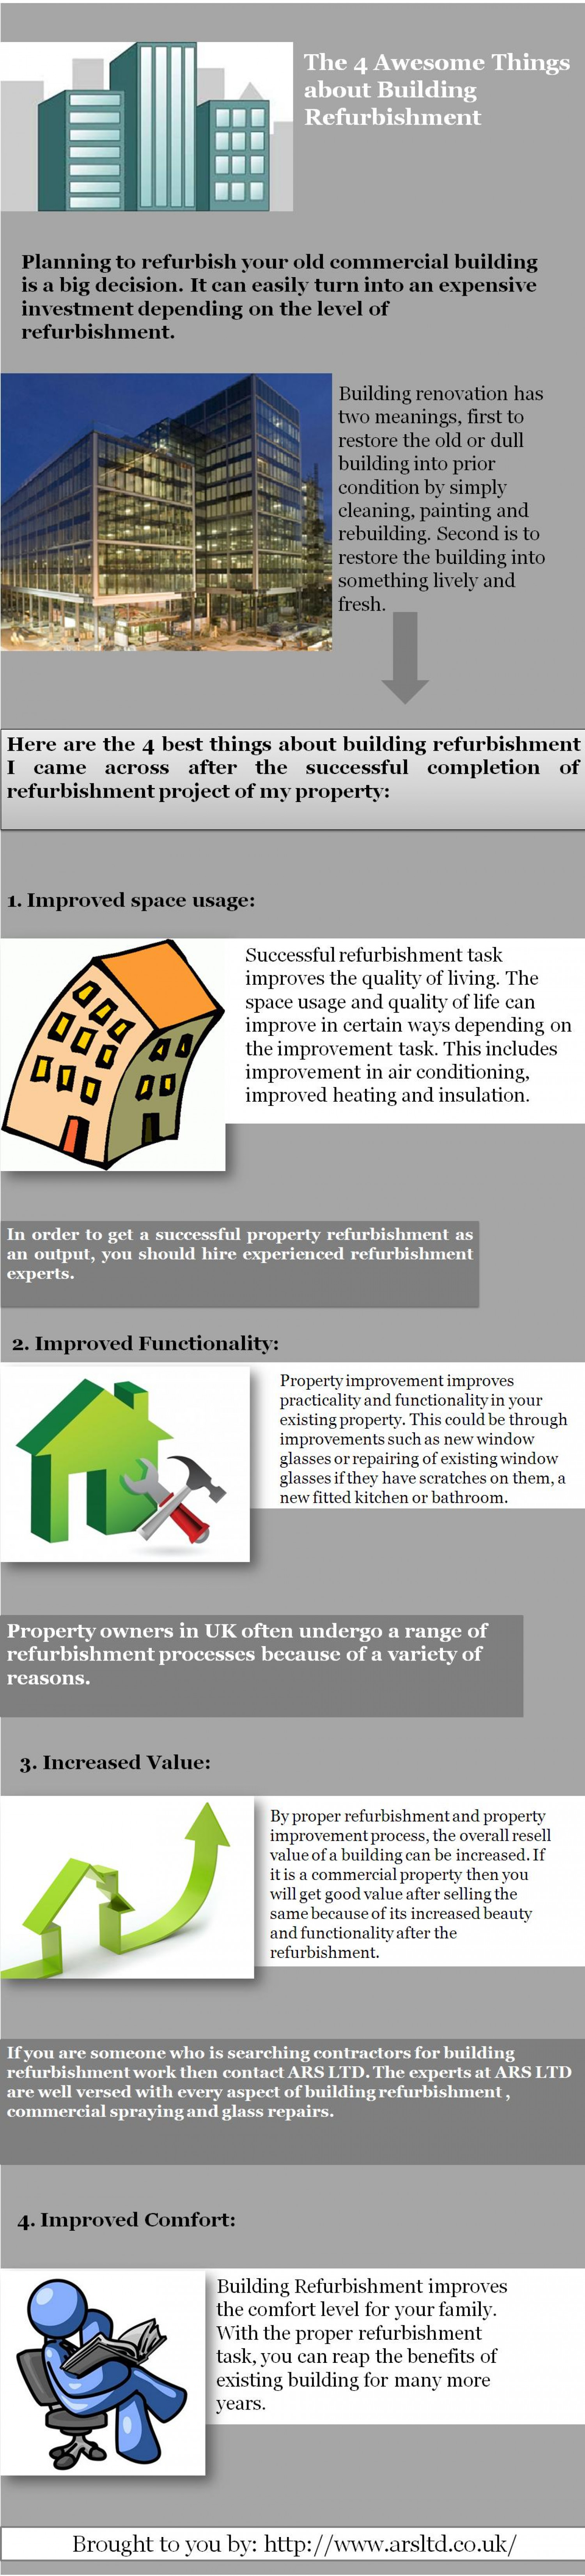 The 4 Awesome Things About Building Refurbishment Infographic